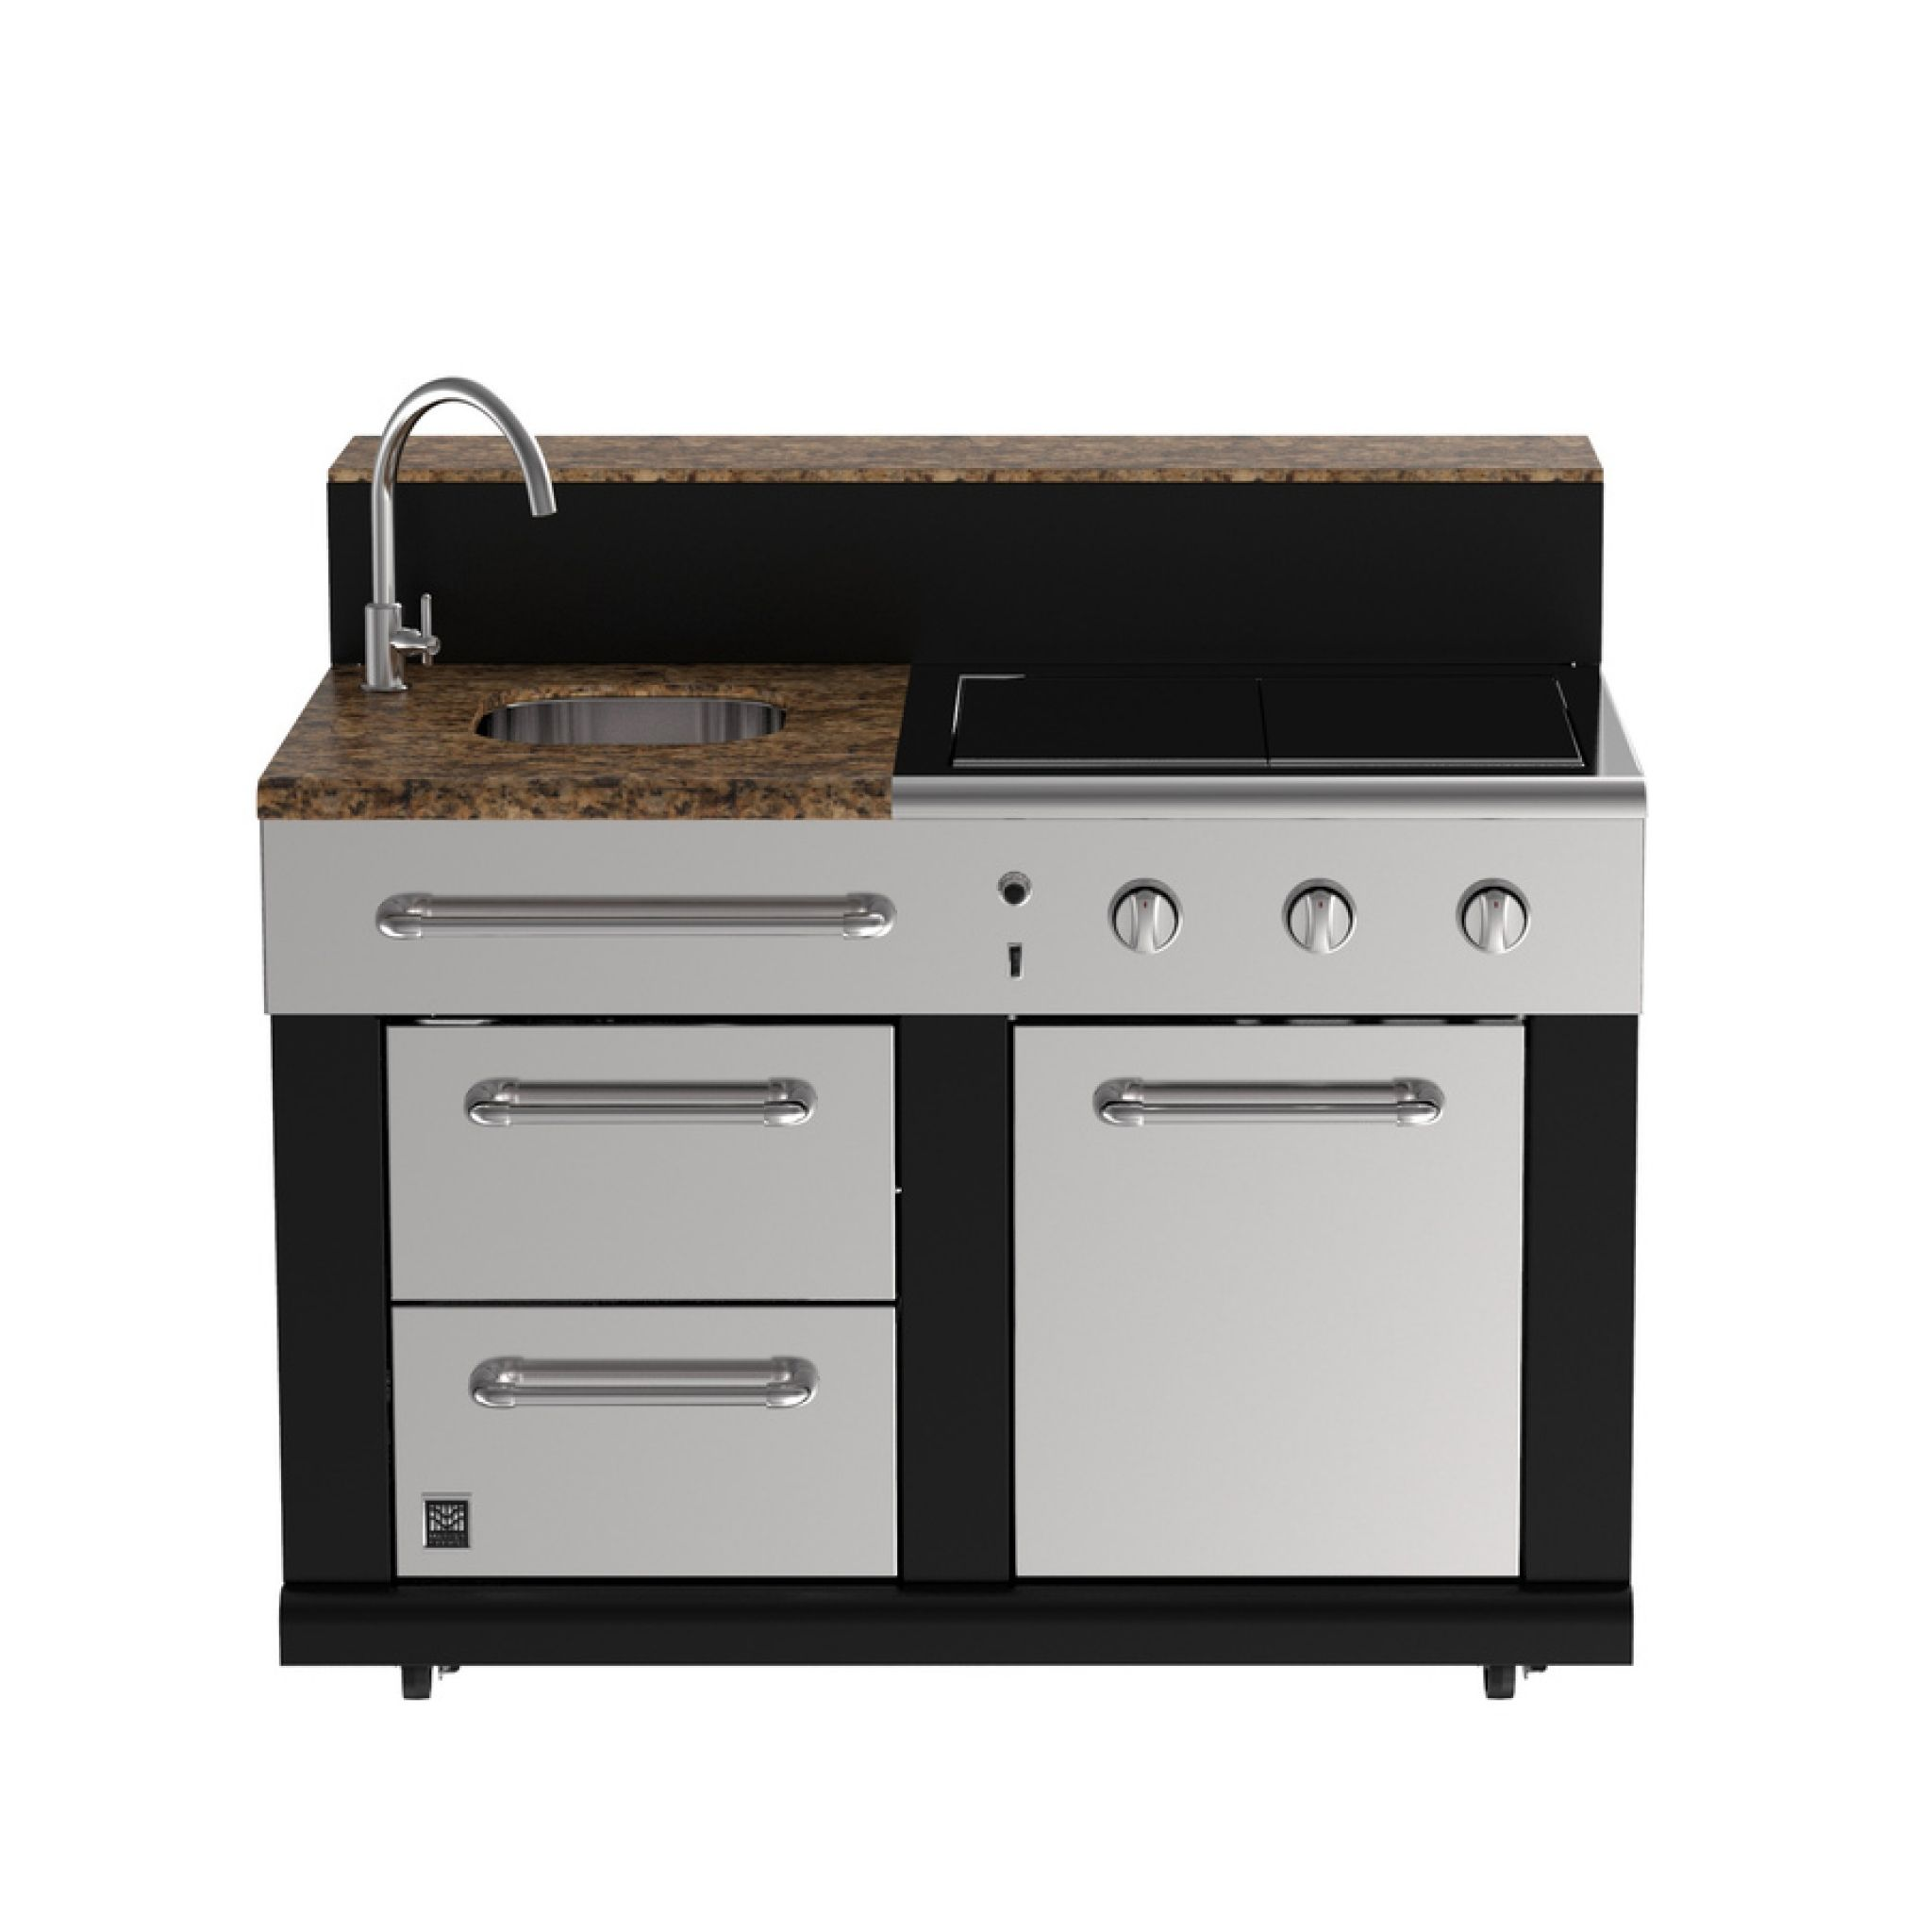 Lowes Outdoor Kitchens: Home Depot Island Grills